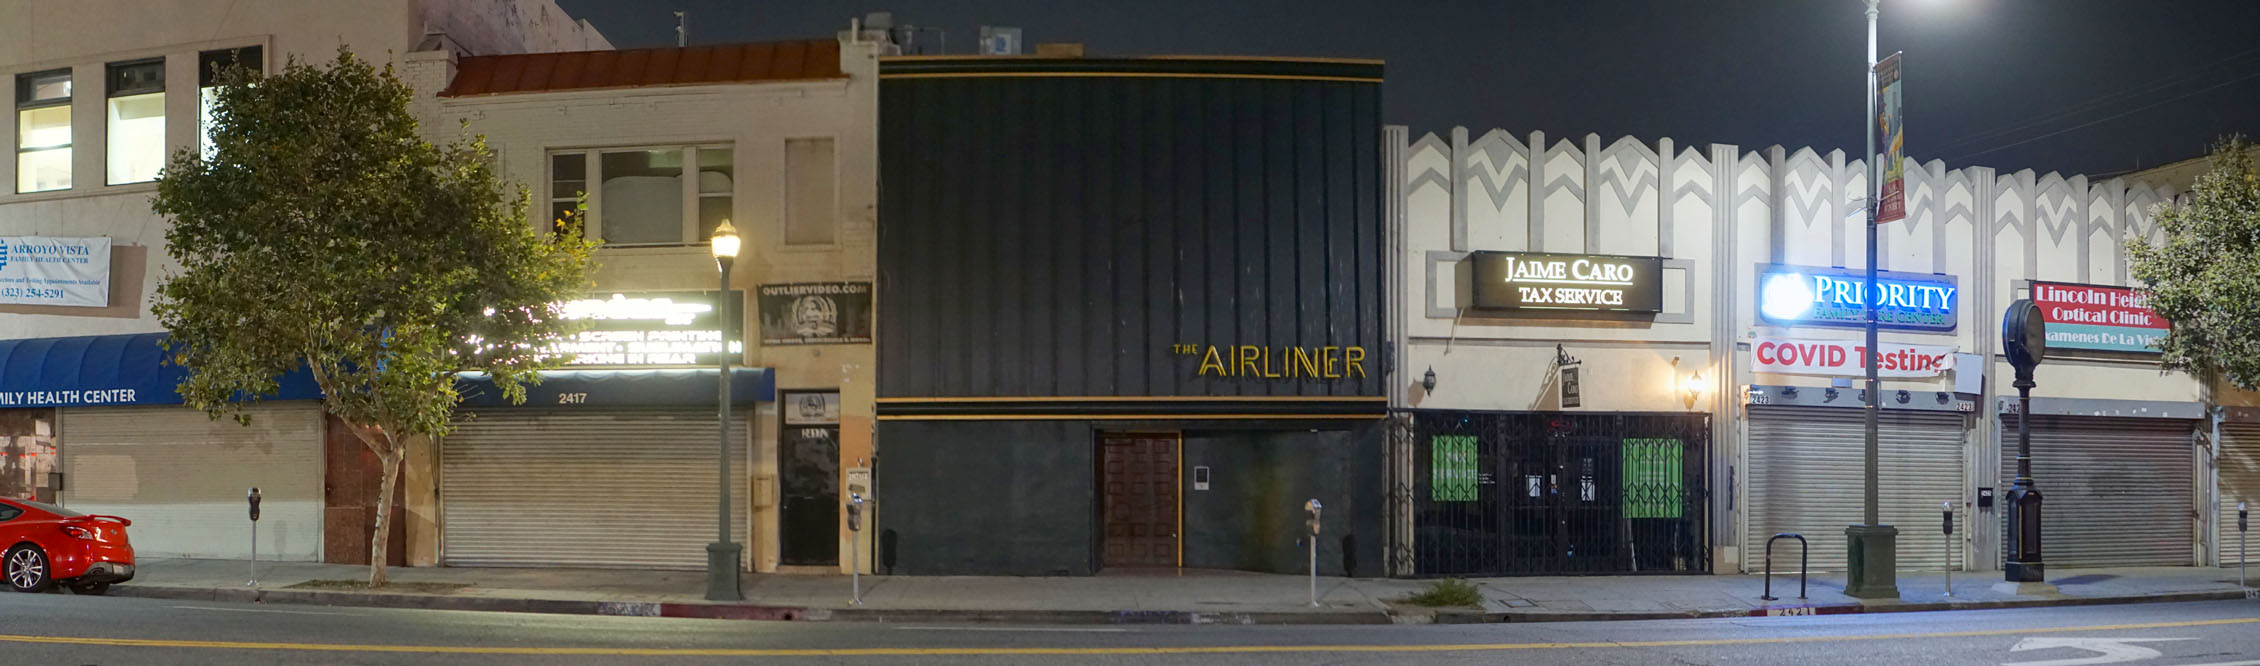 The Airliner Exterior